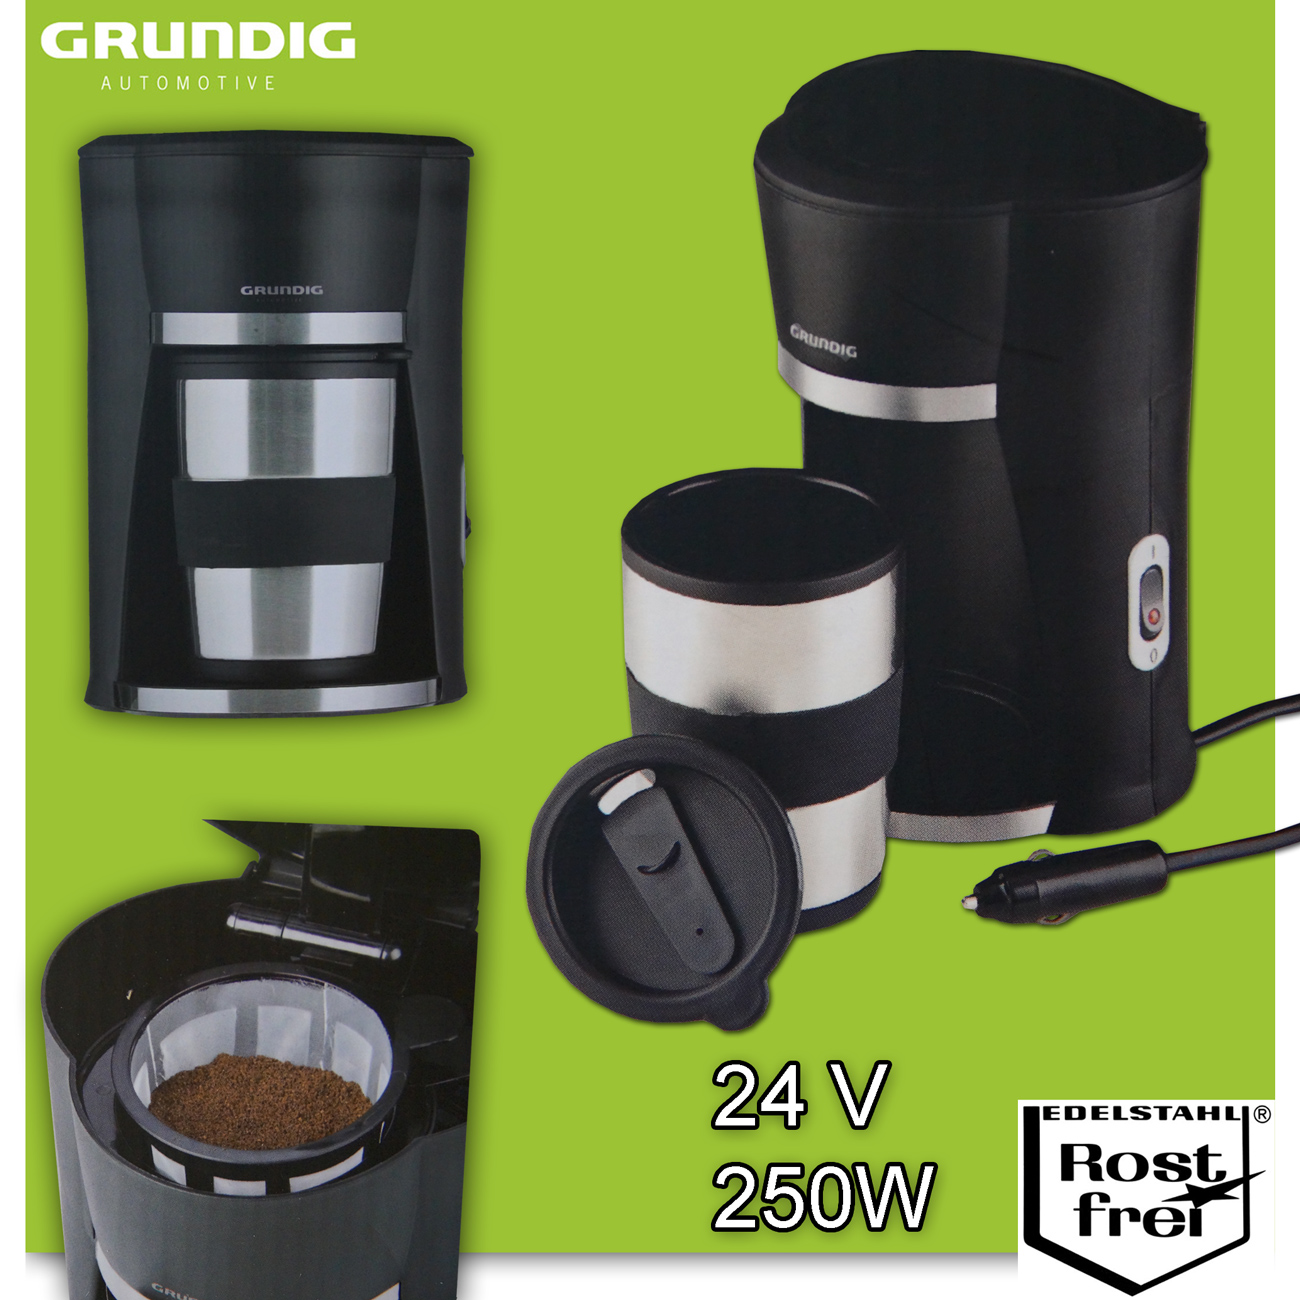 24v grundig kaffeemaschine inkl becher boot trucker. Black Bedroom Furniture Sets. Home Design Ideas